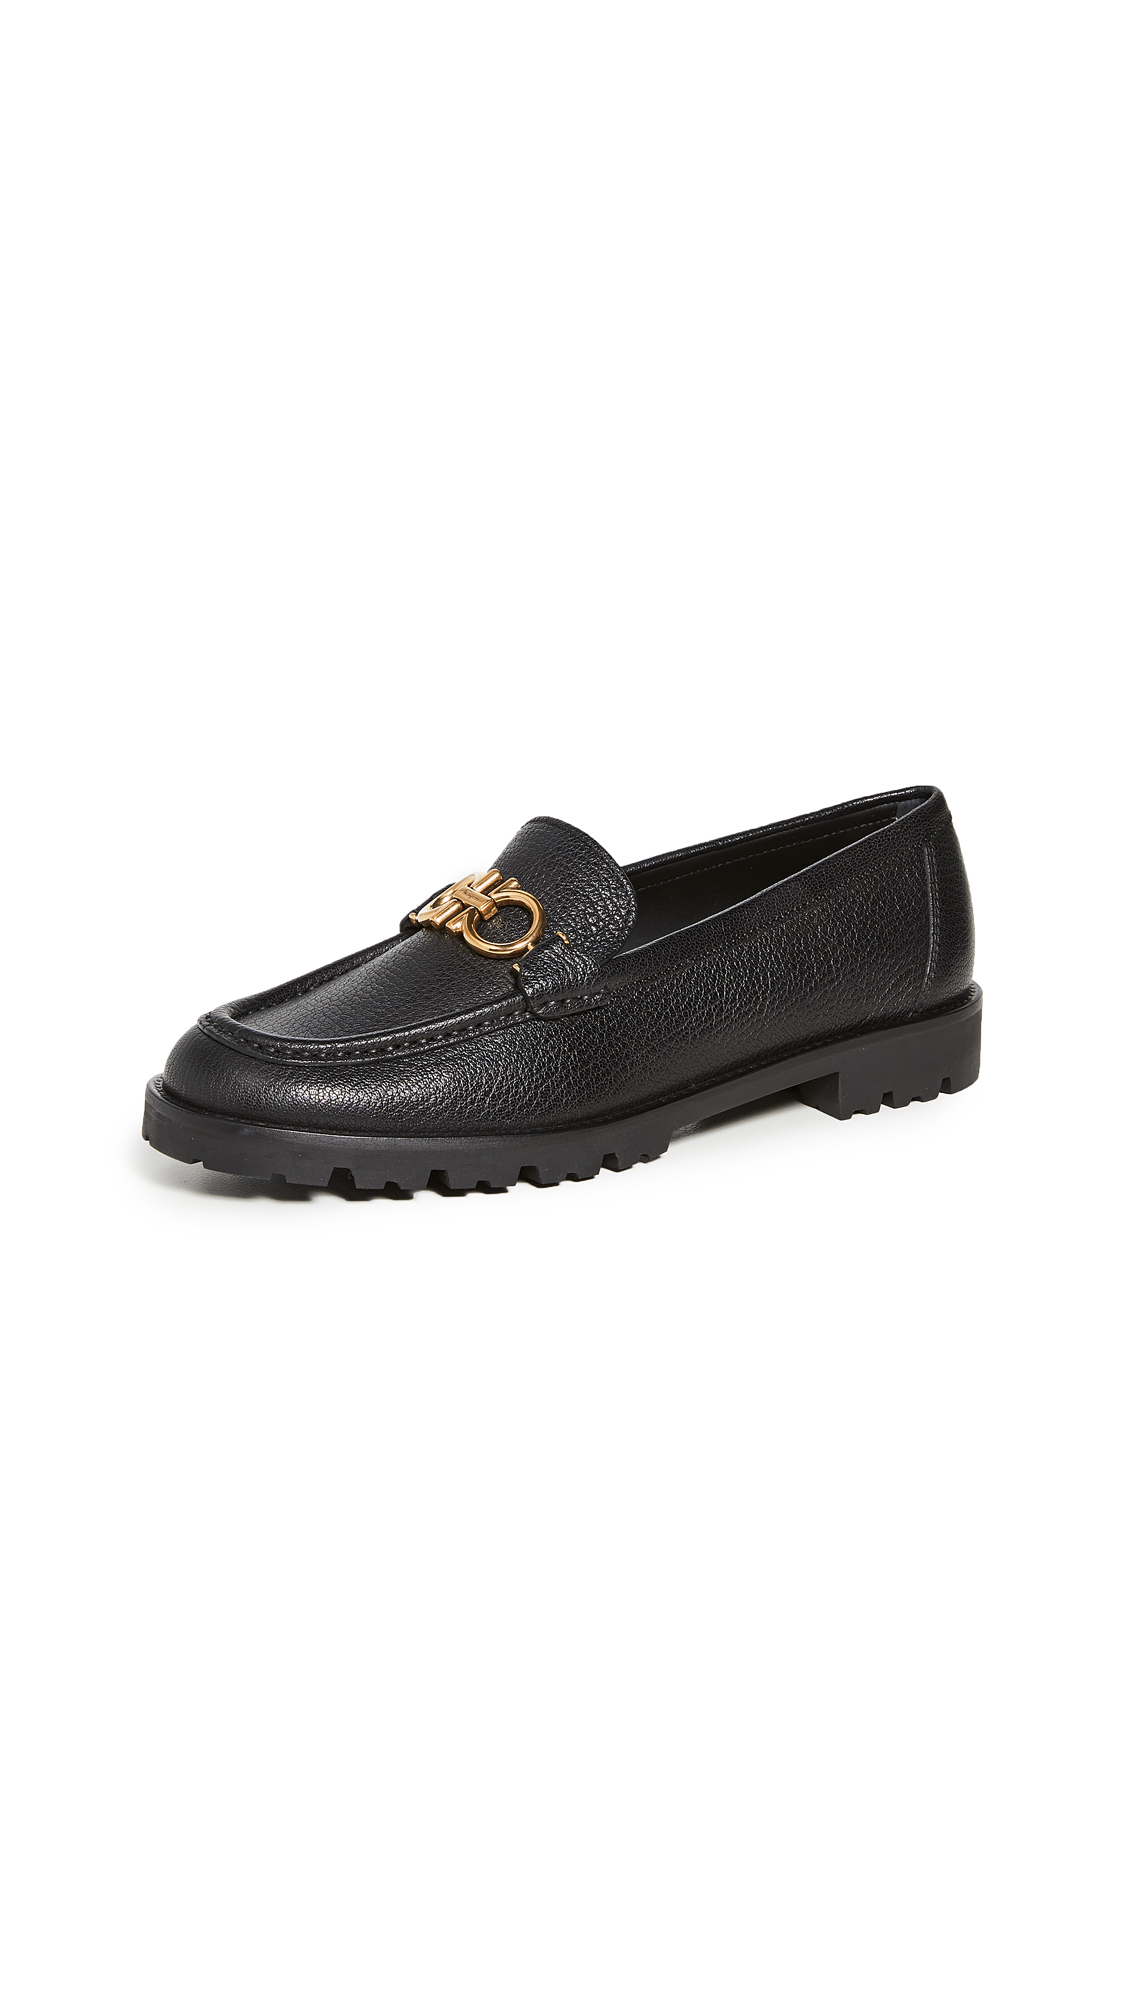 Salvatore Ferragamo Rolo 5 Loafers